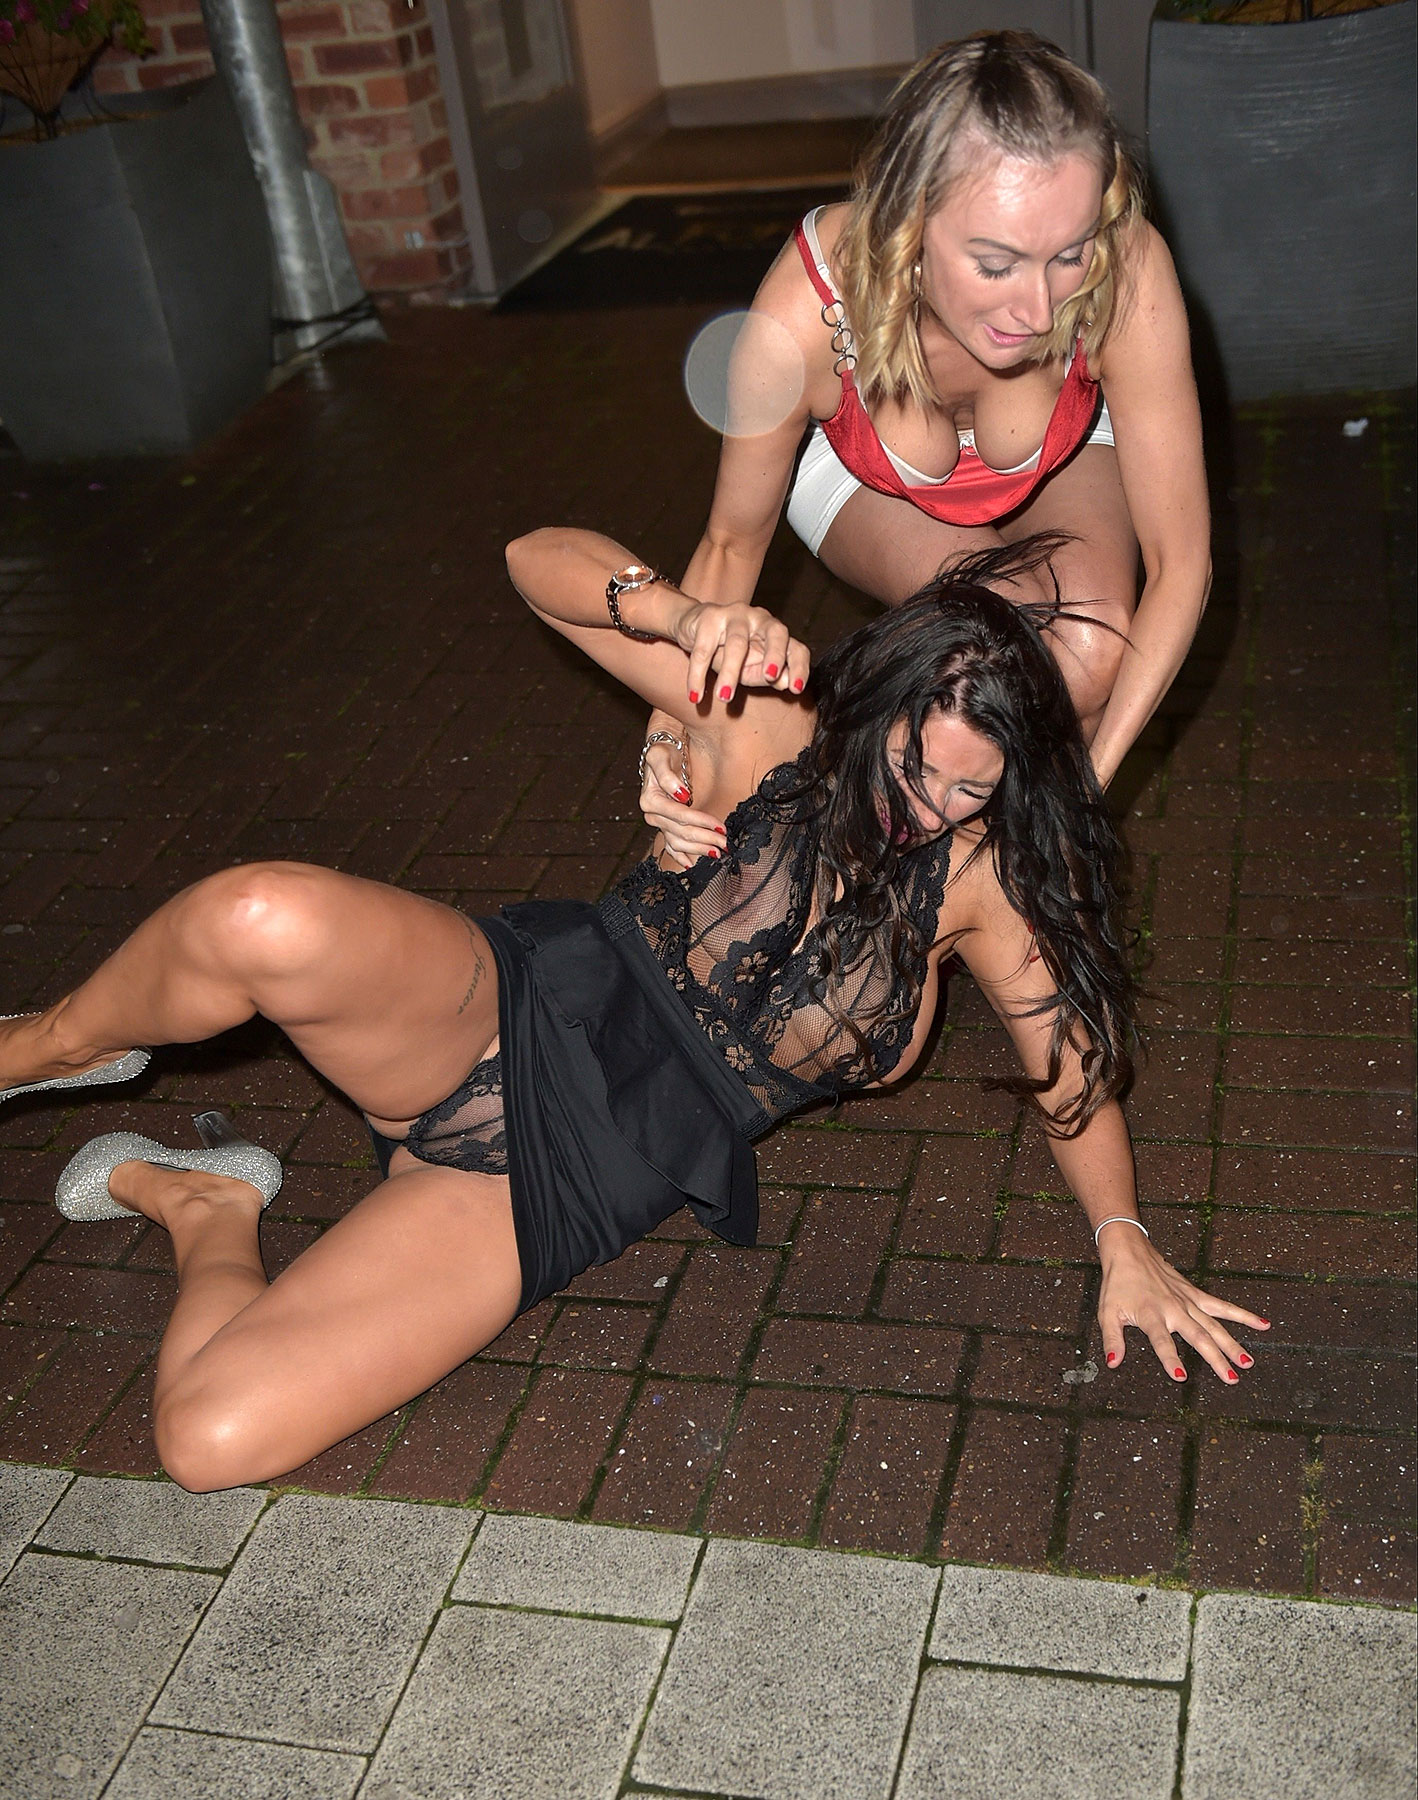 hot drunk girls upskirts